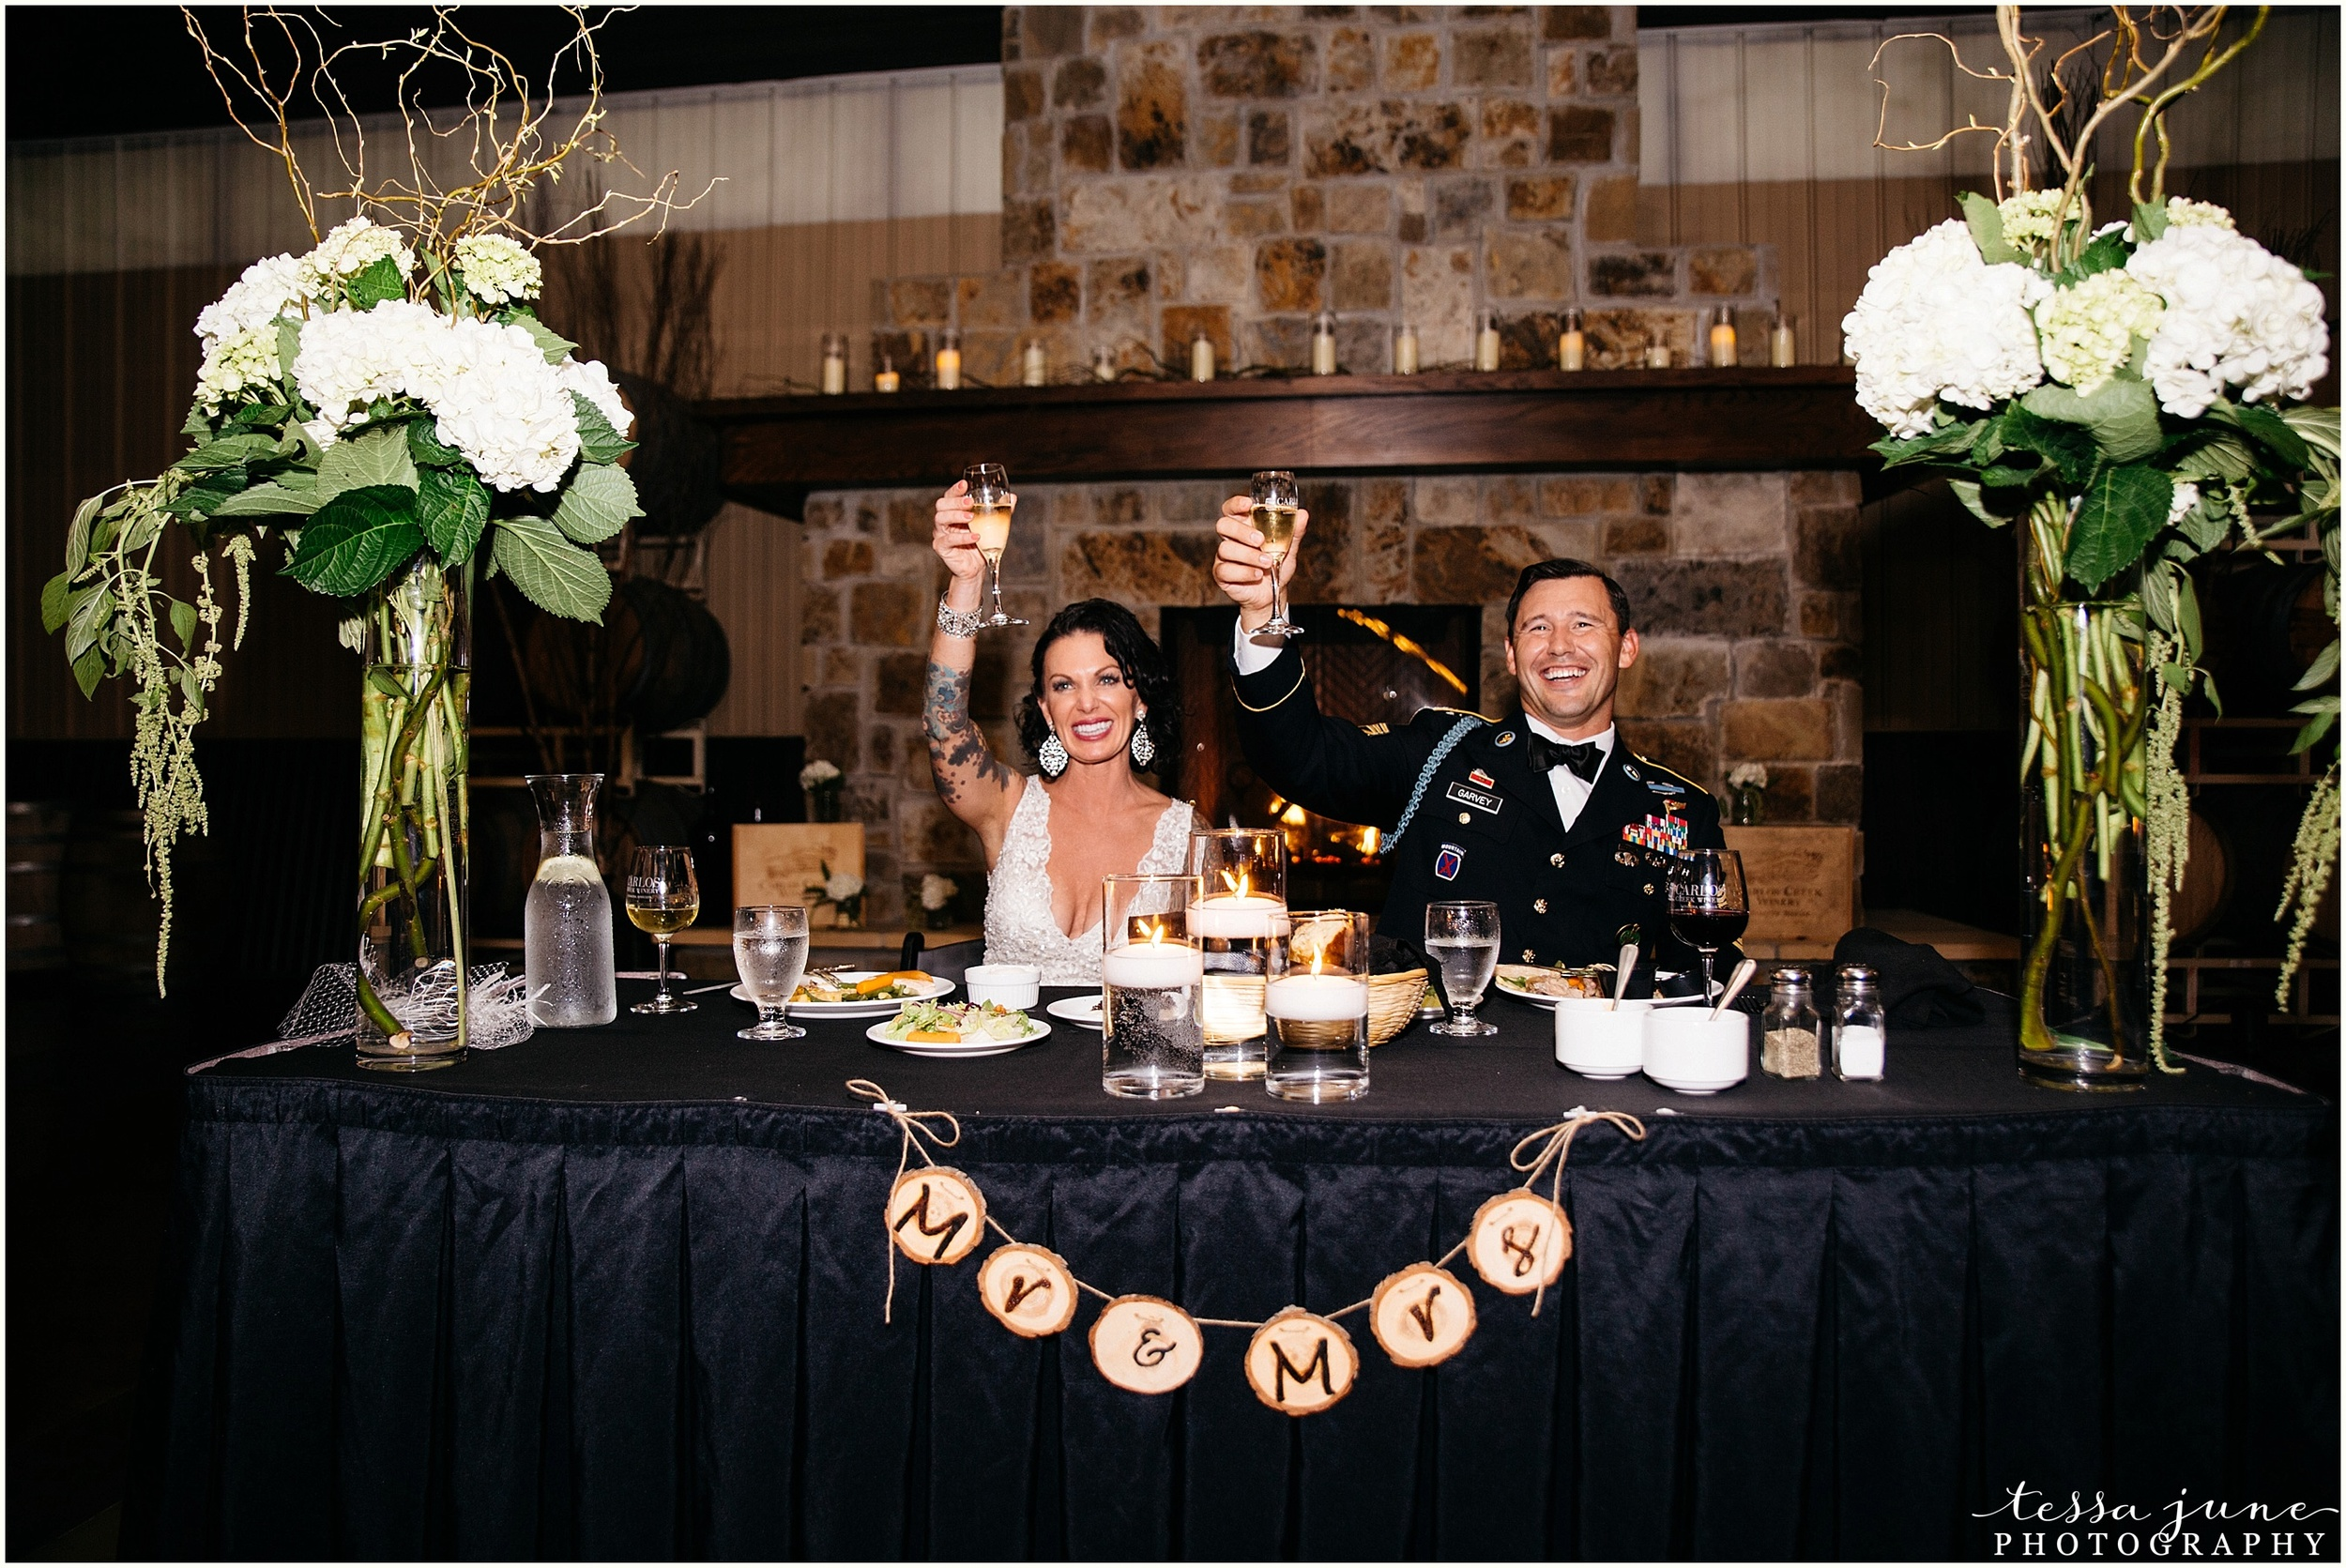 http://www.tessajunephotography.com/photoblog/tawny-bobby-carlos-creek-winery-alexandria-minnesota-wedding